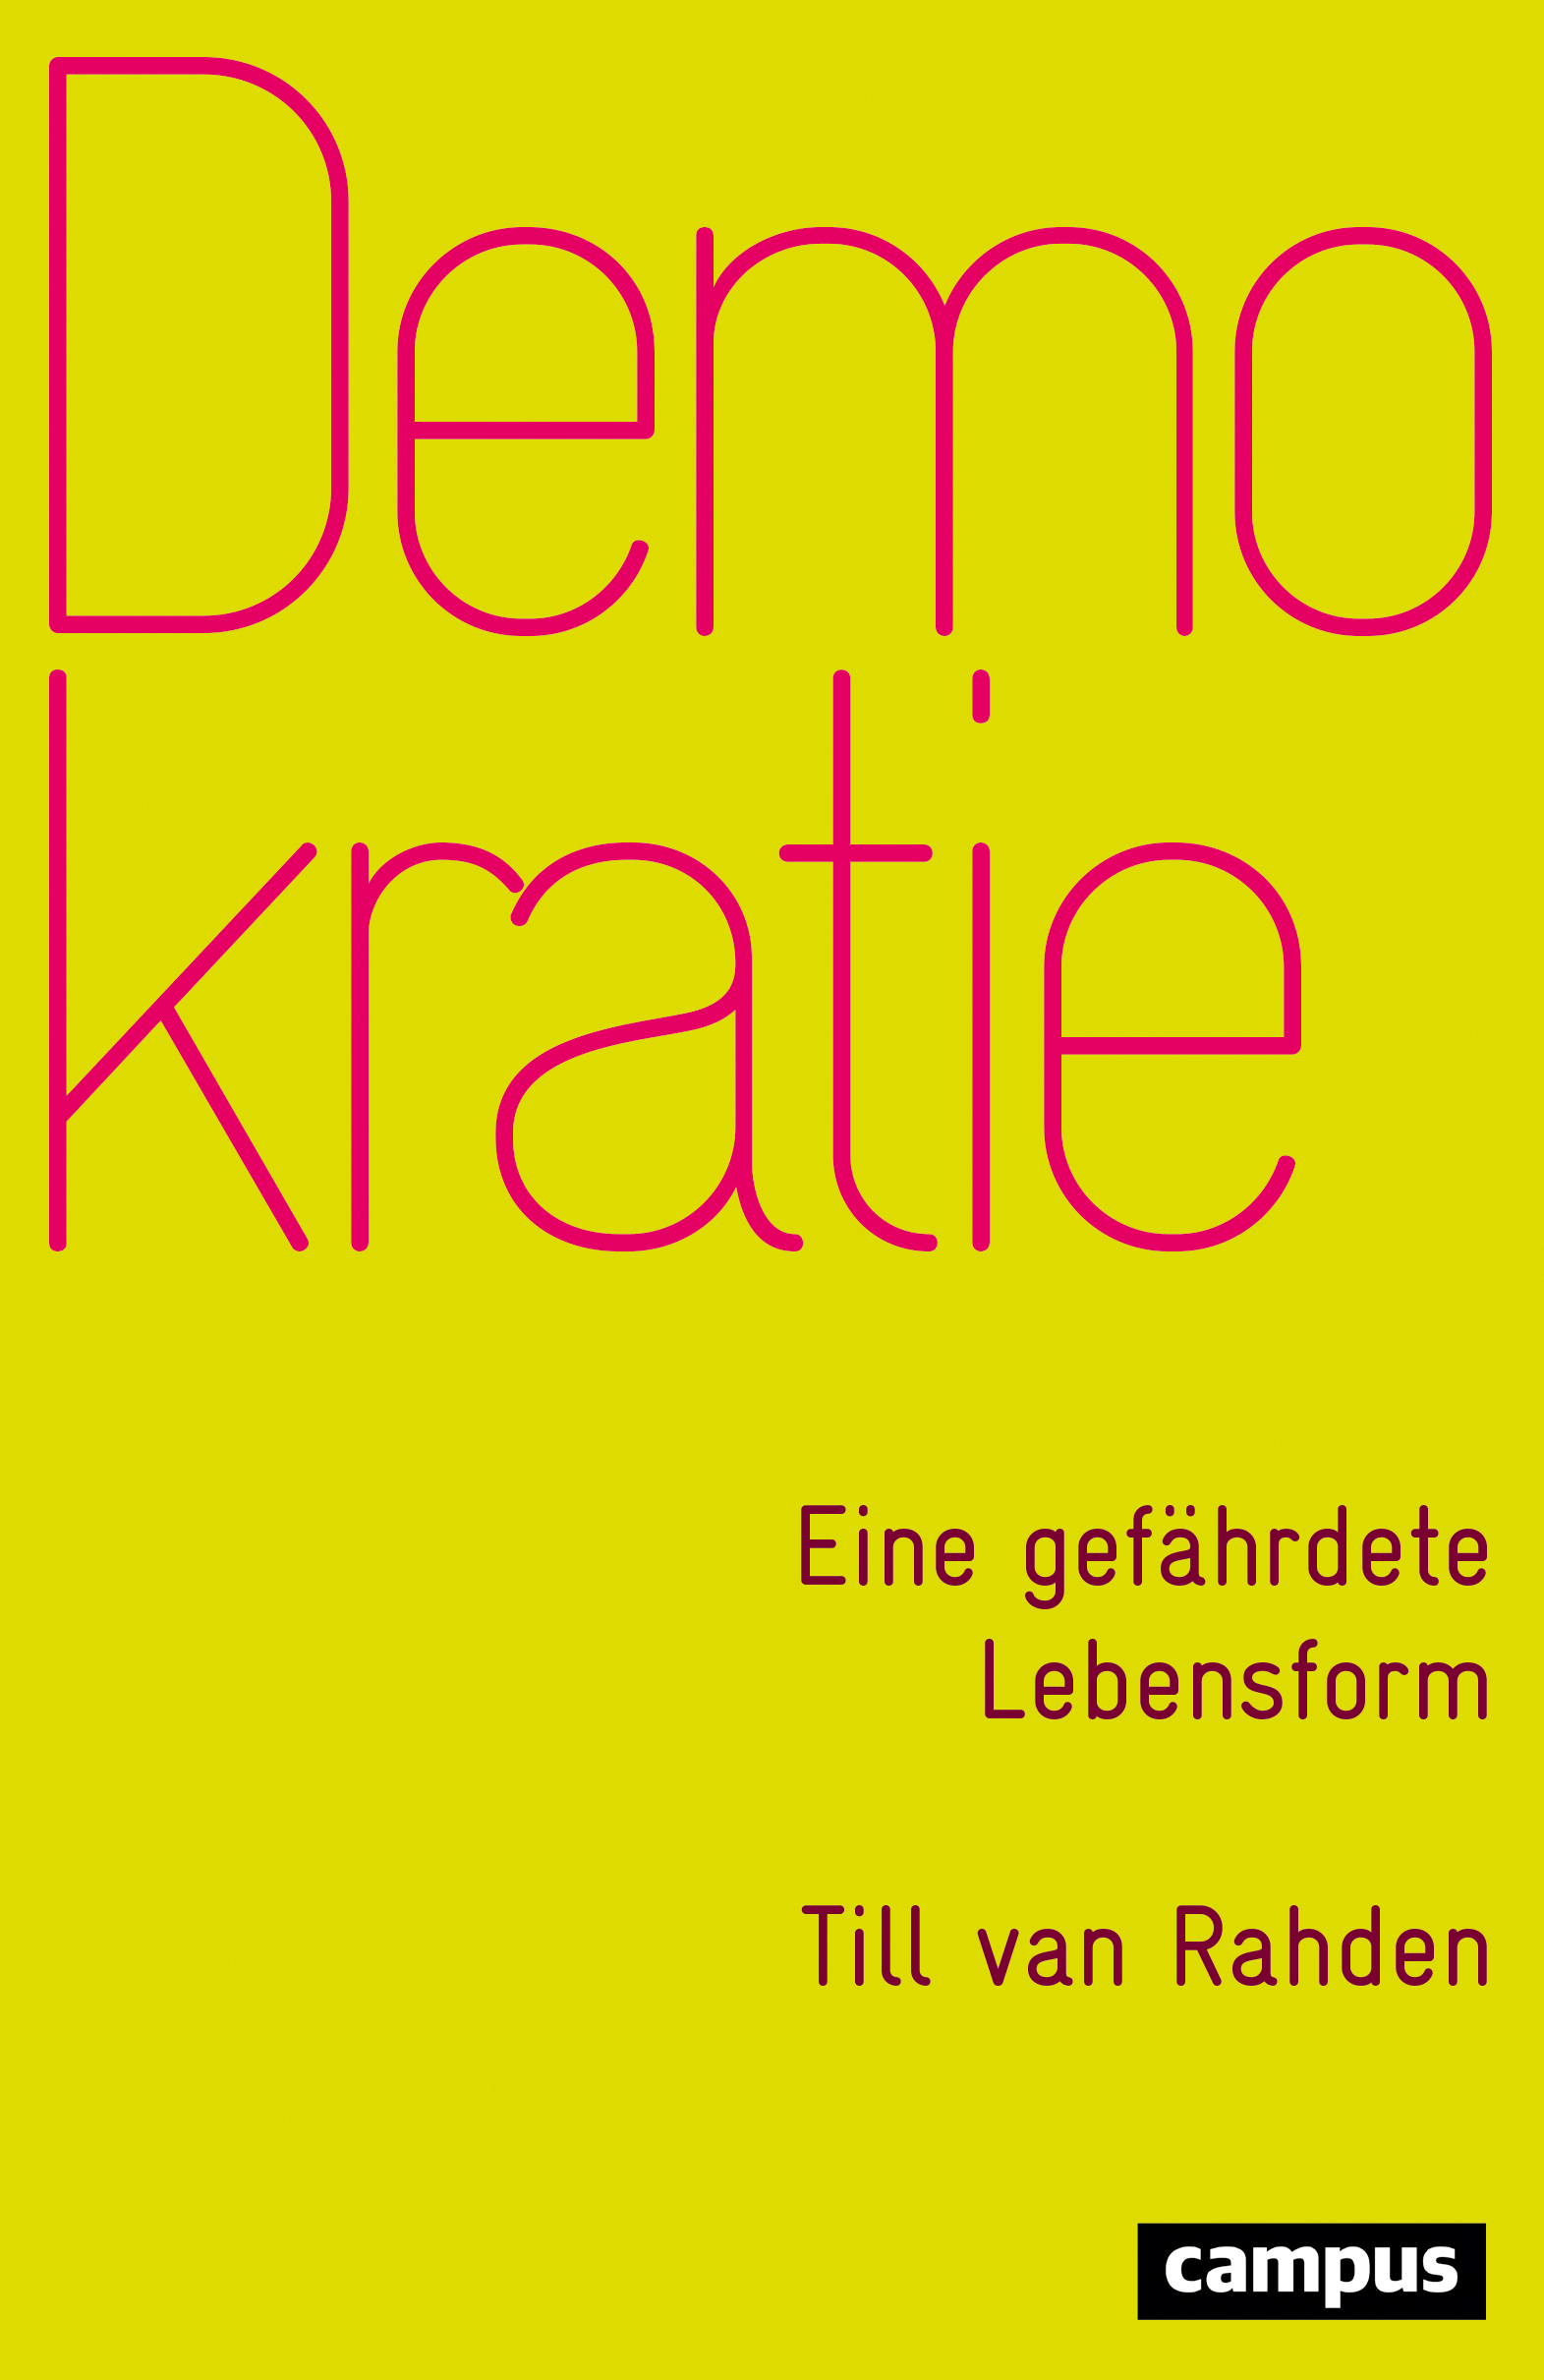 Demokratie Til can Raheden book cover - yellow